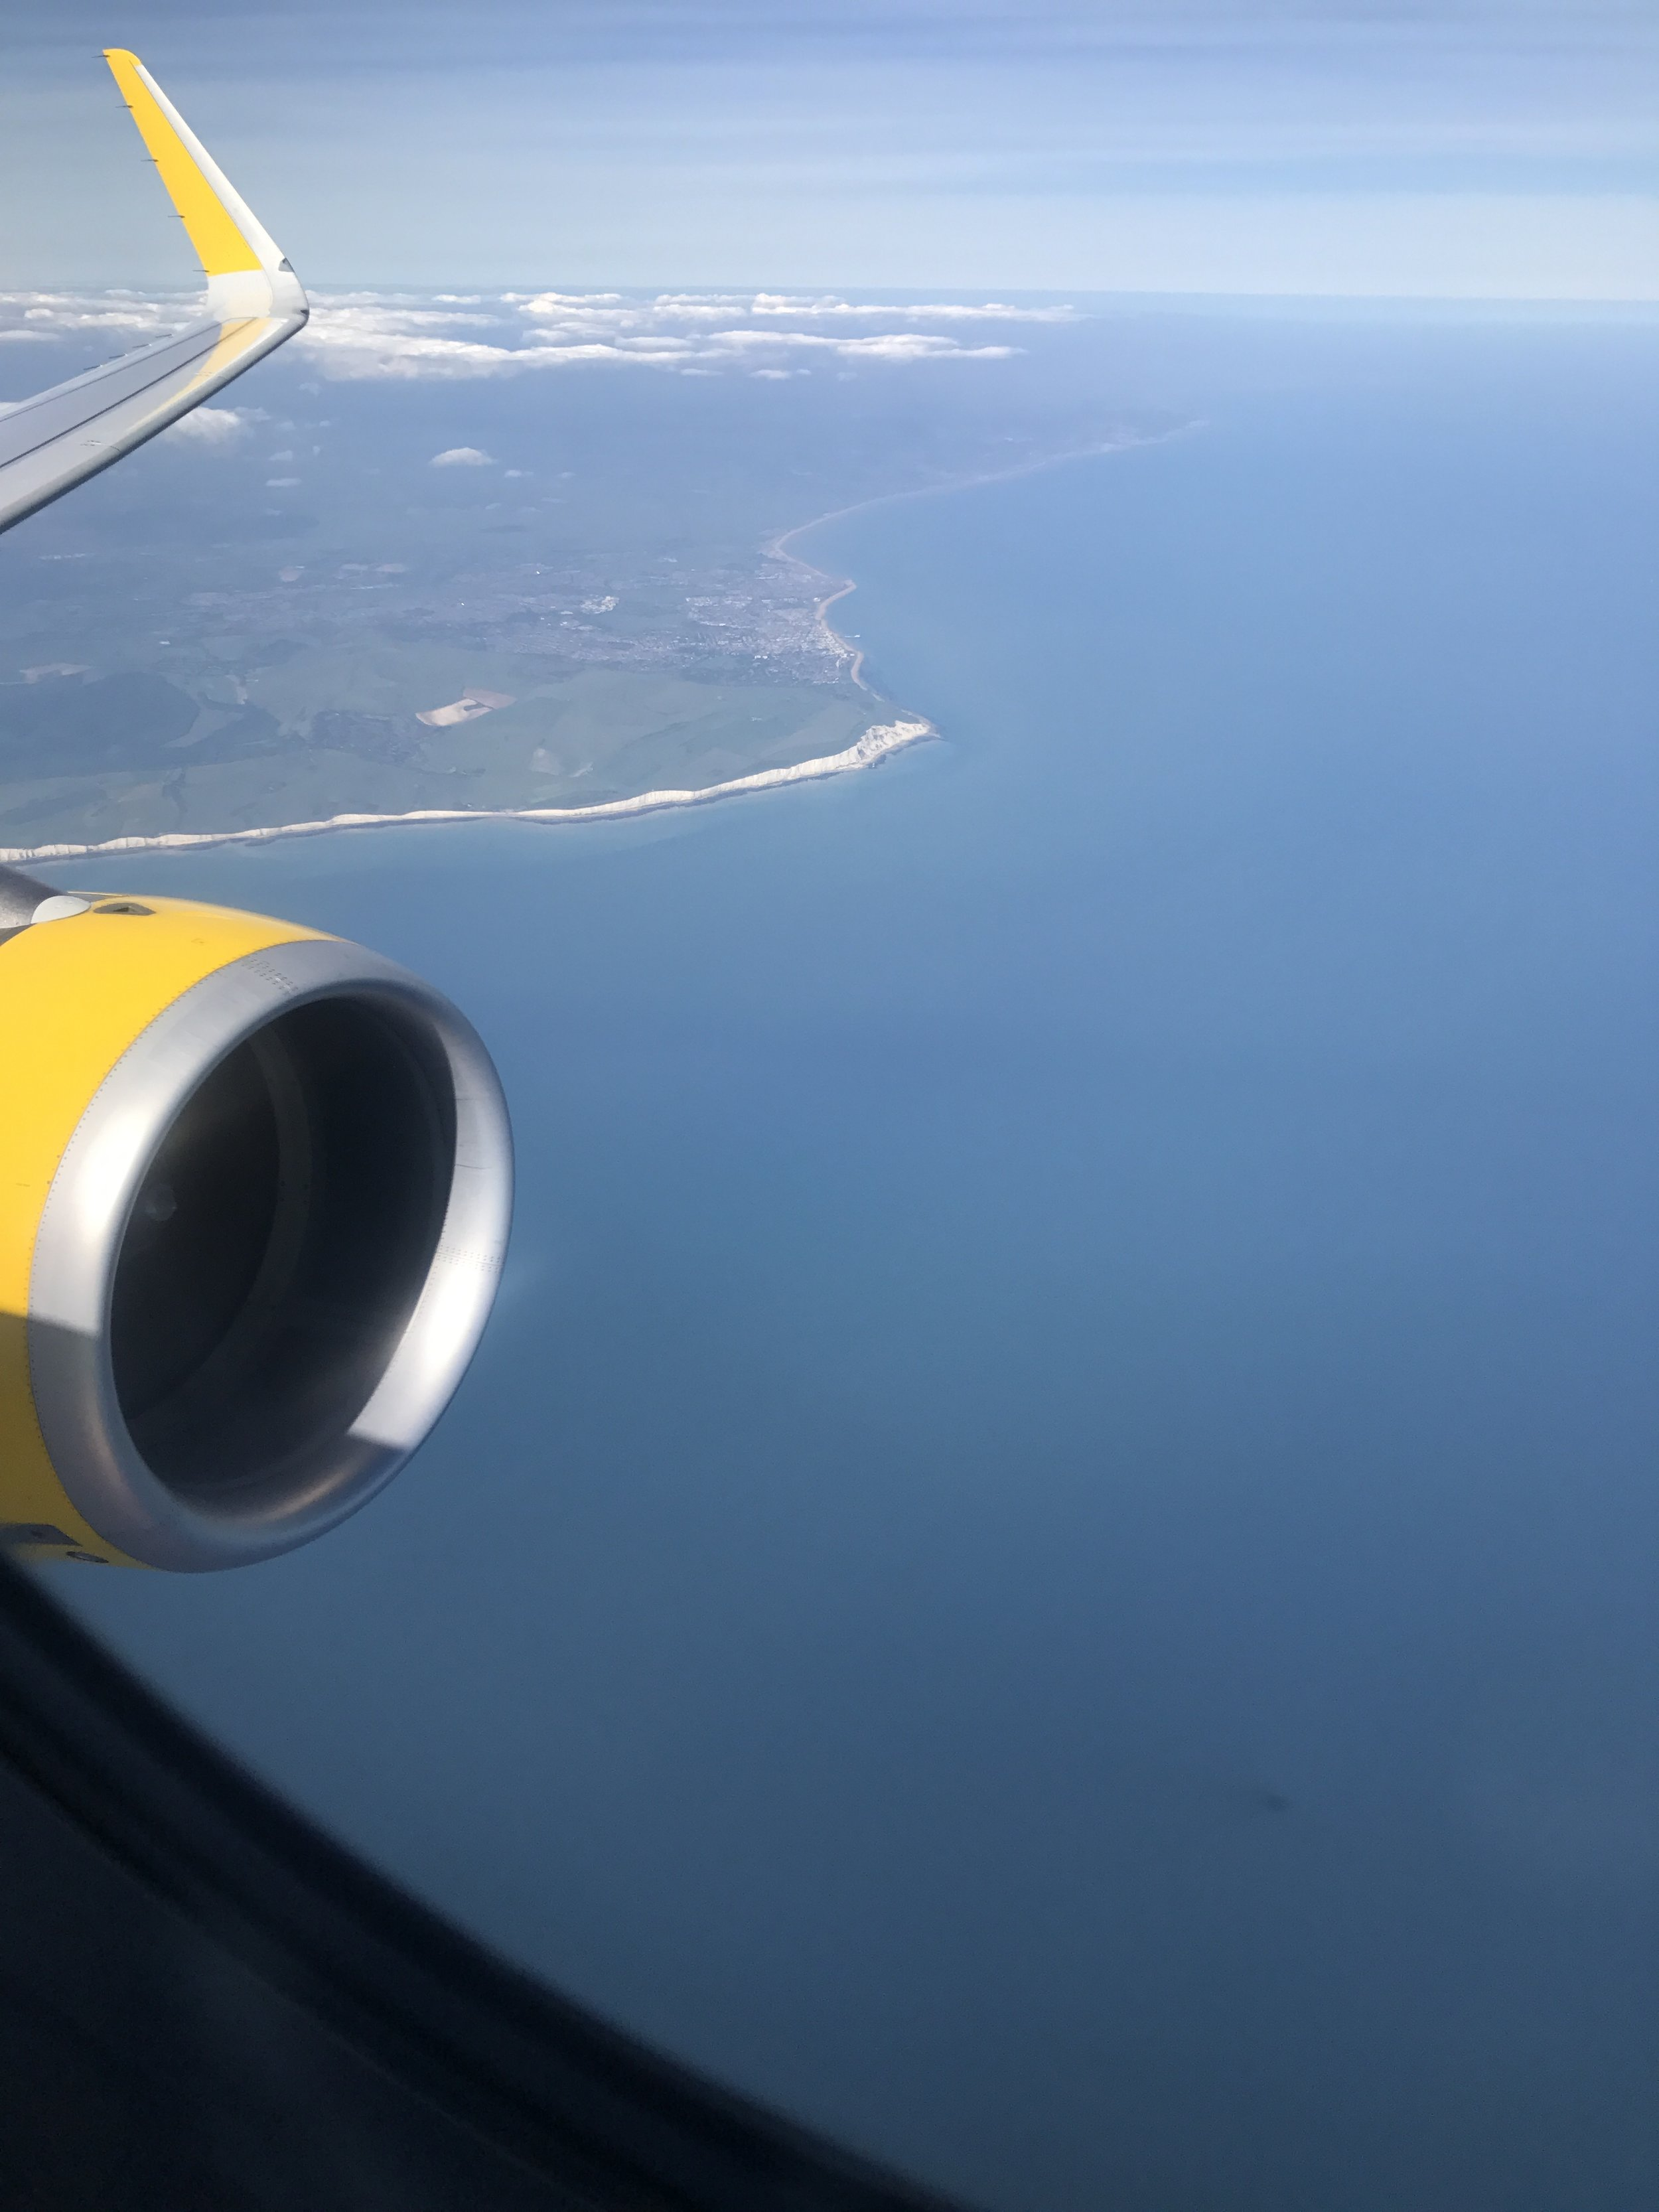 About to land in Rome